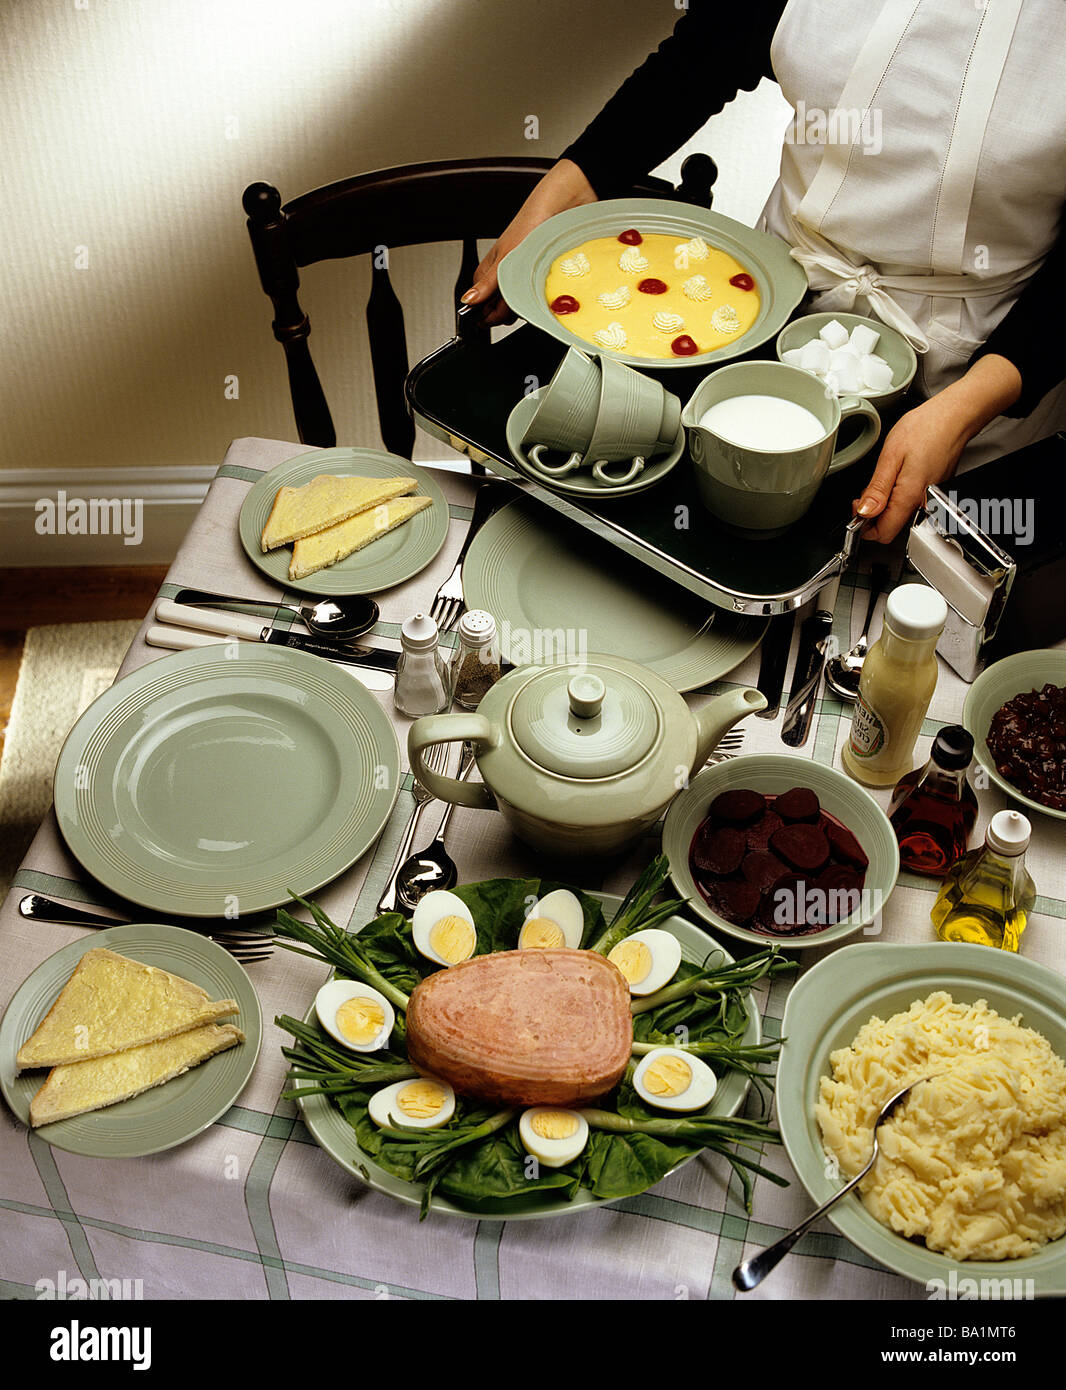 1950's style food serving - Stock Image